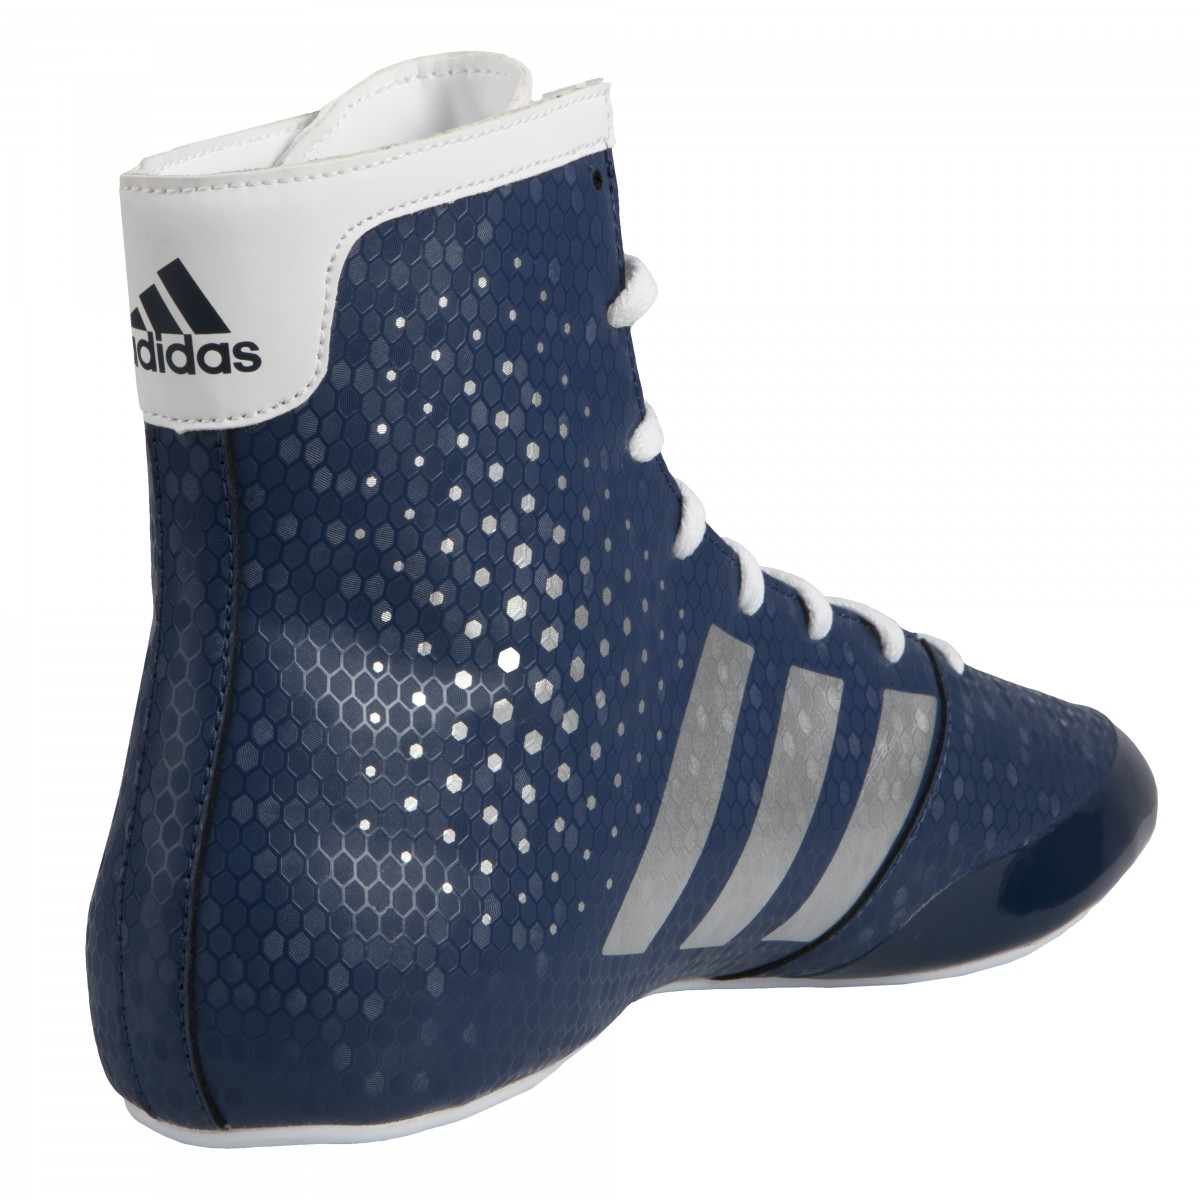 online store a9507 34c26 Adidas KO Legend 16.2 Boxing Shoes. Click to enlarge image(s)